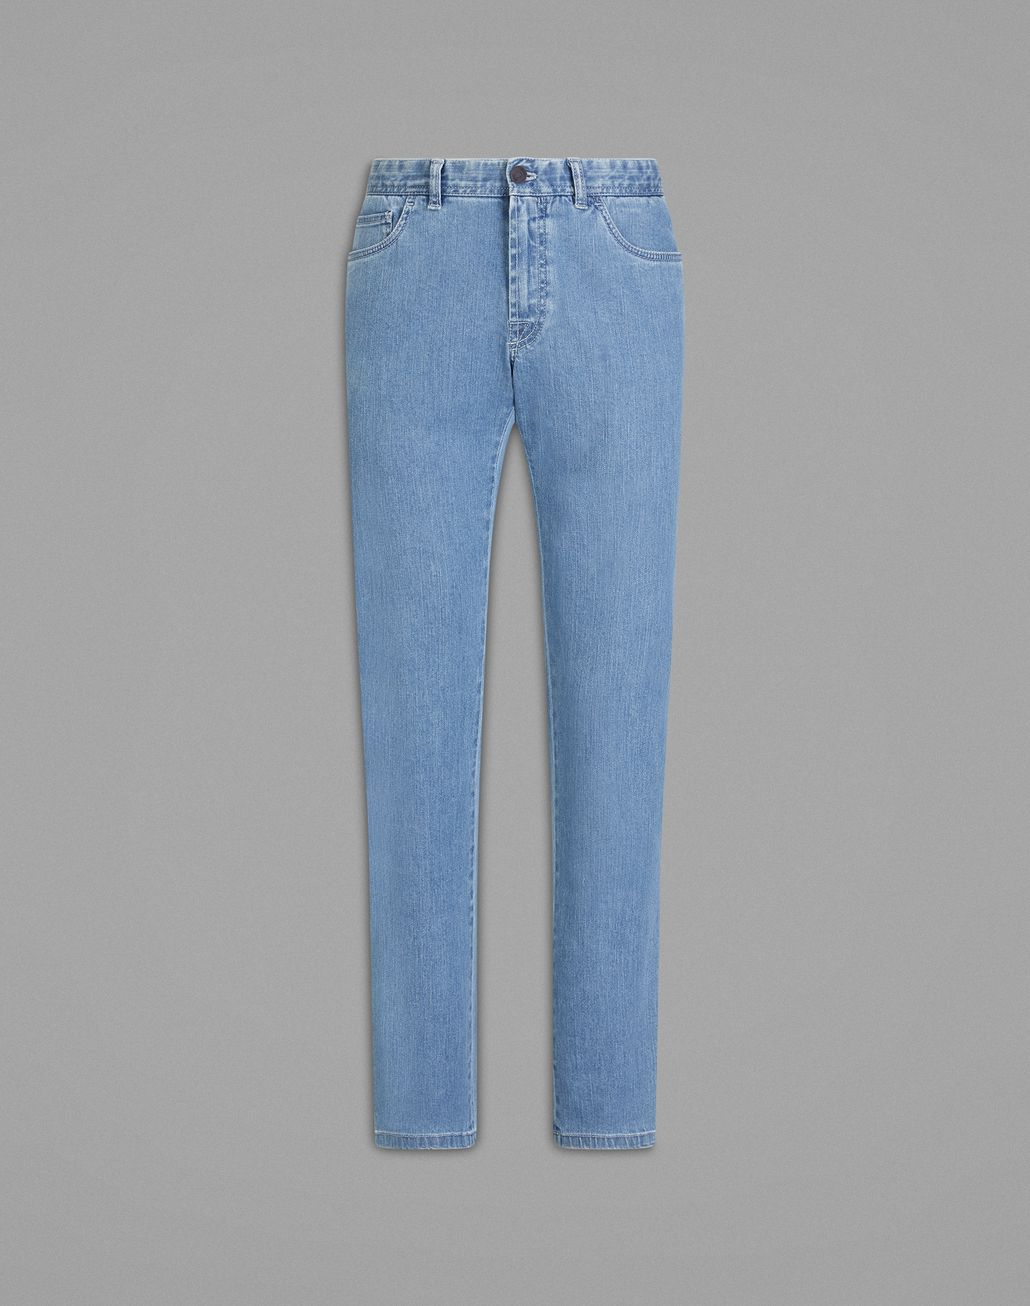 BRIONI 'Essential' Light Blue Comfort Fit Jeans Denim Man f